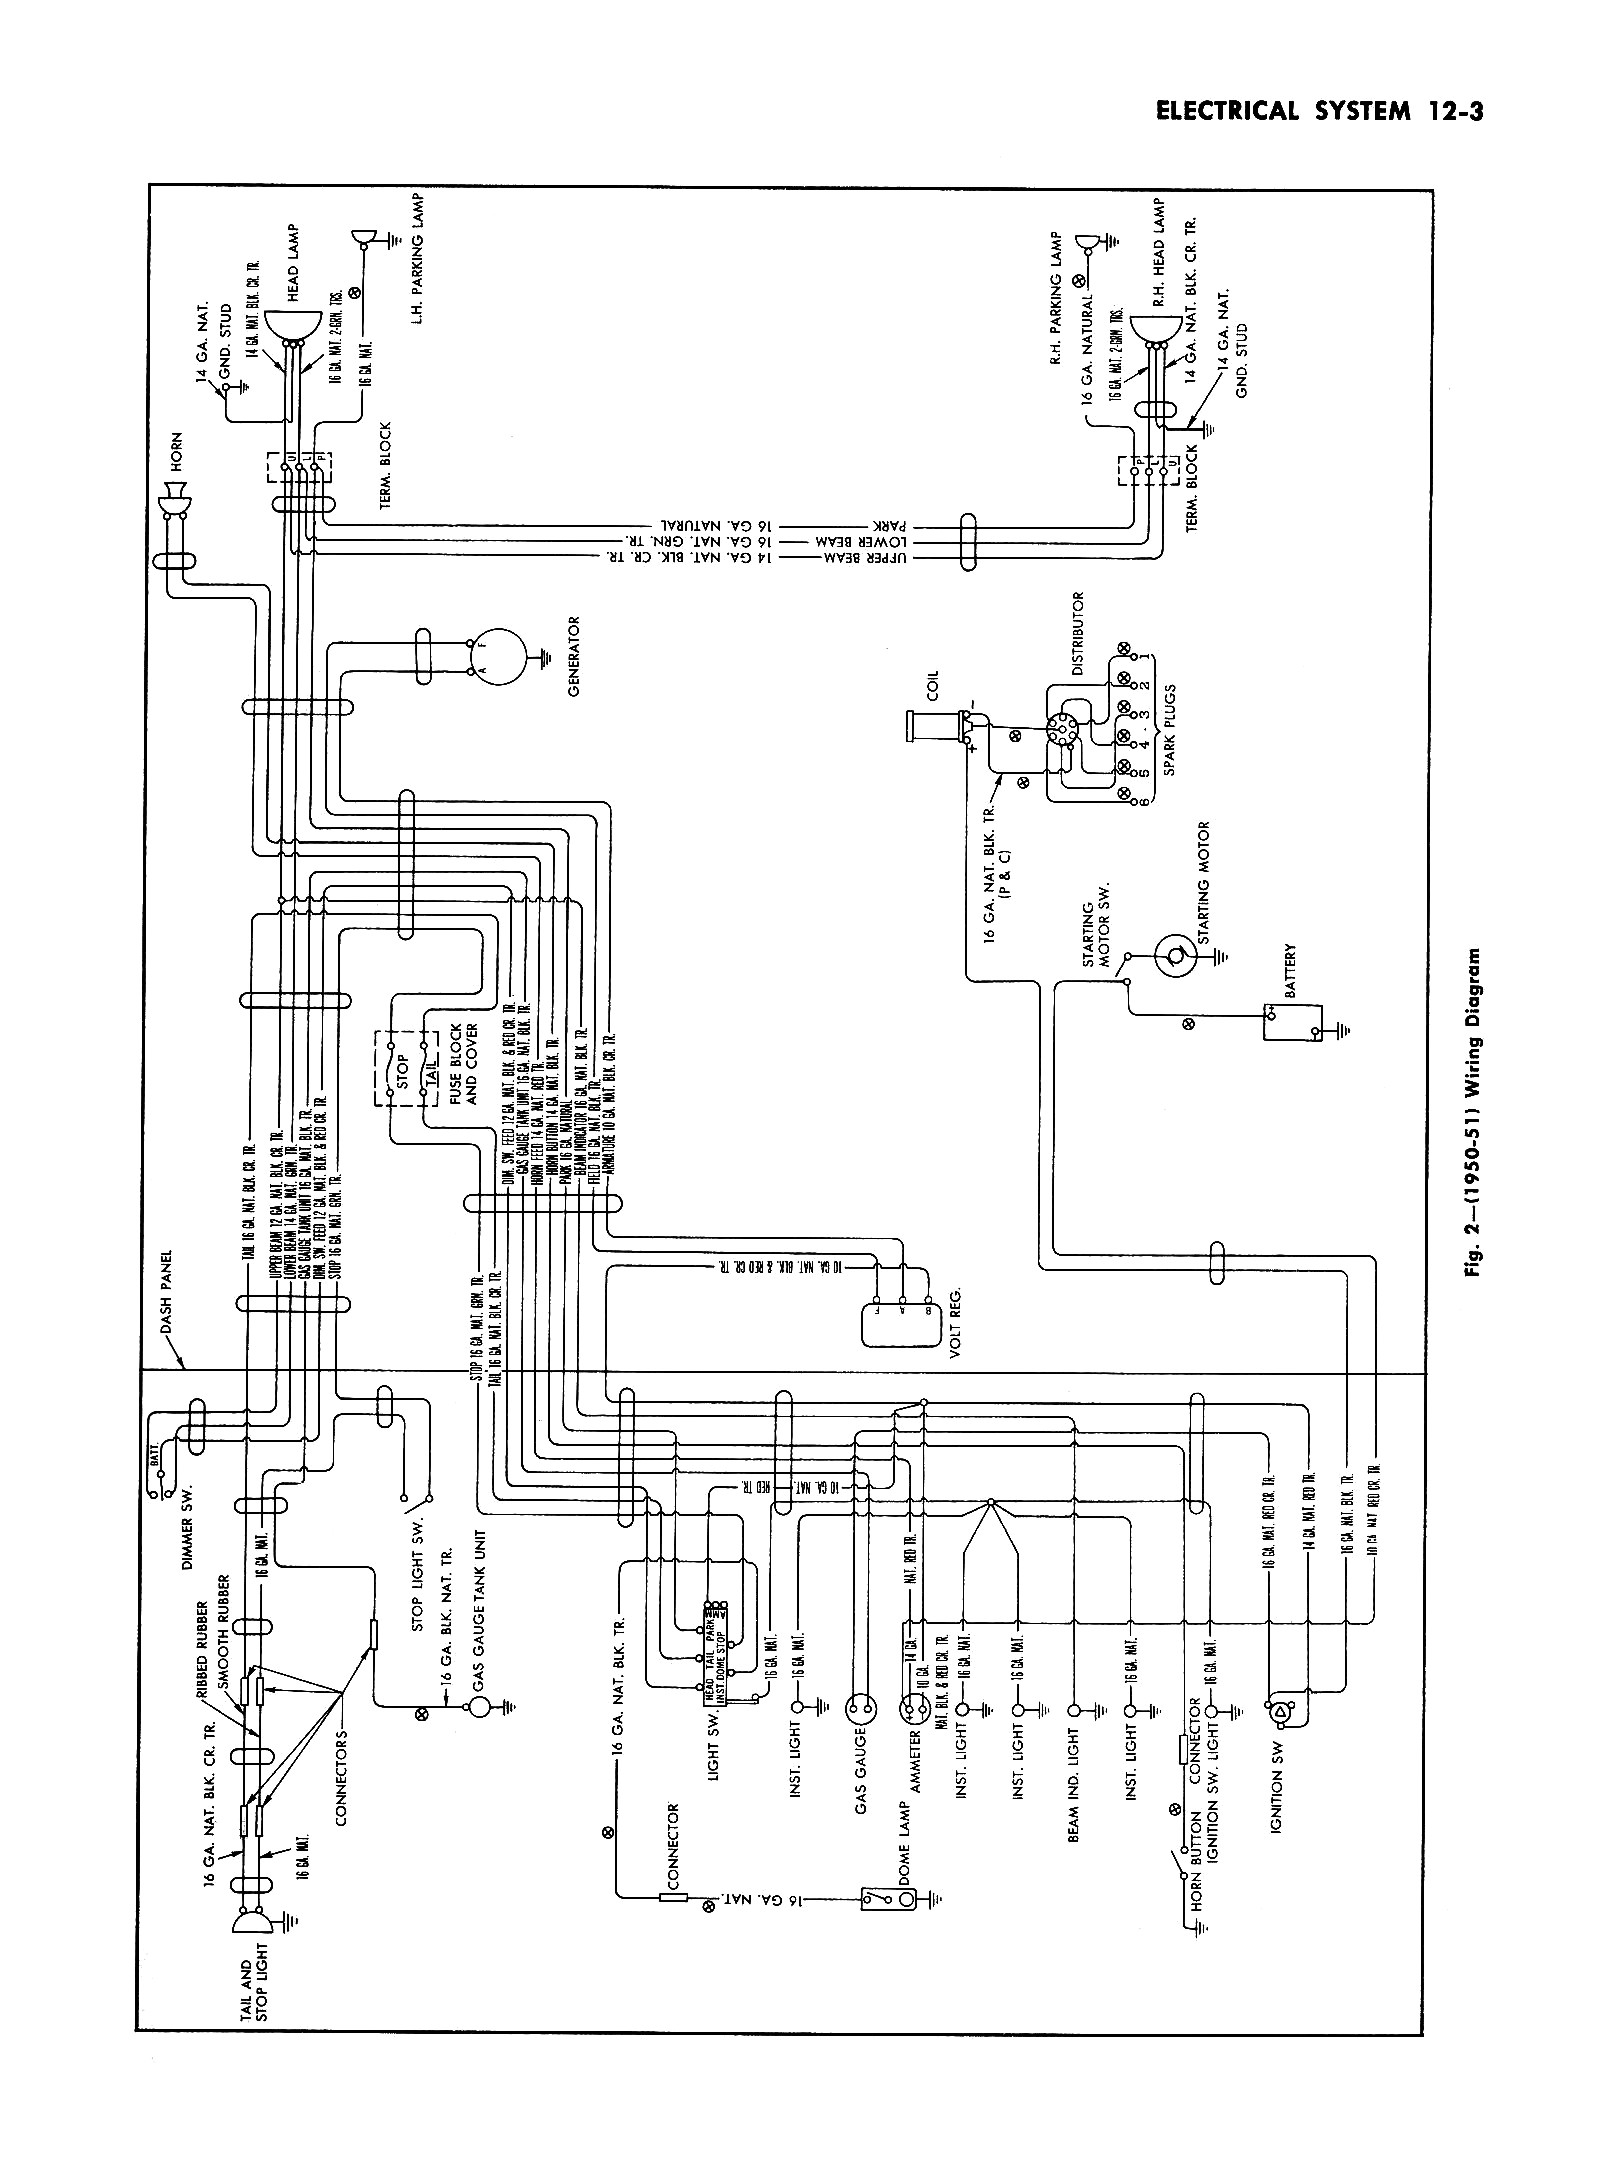 chevy wiring diagrams rh chevy oldcarmanualproject com Ford F100 6 Cylinder Wiring Harness Ford F100 6 Cylinder Wiring Harness